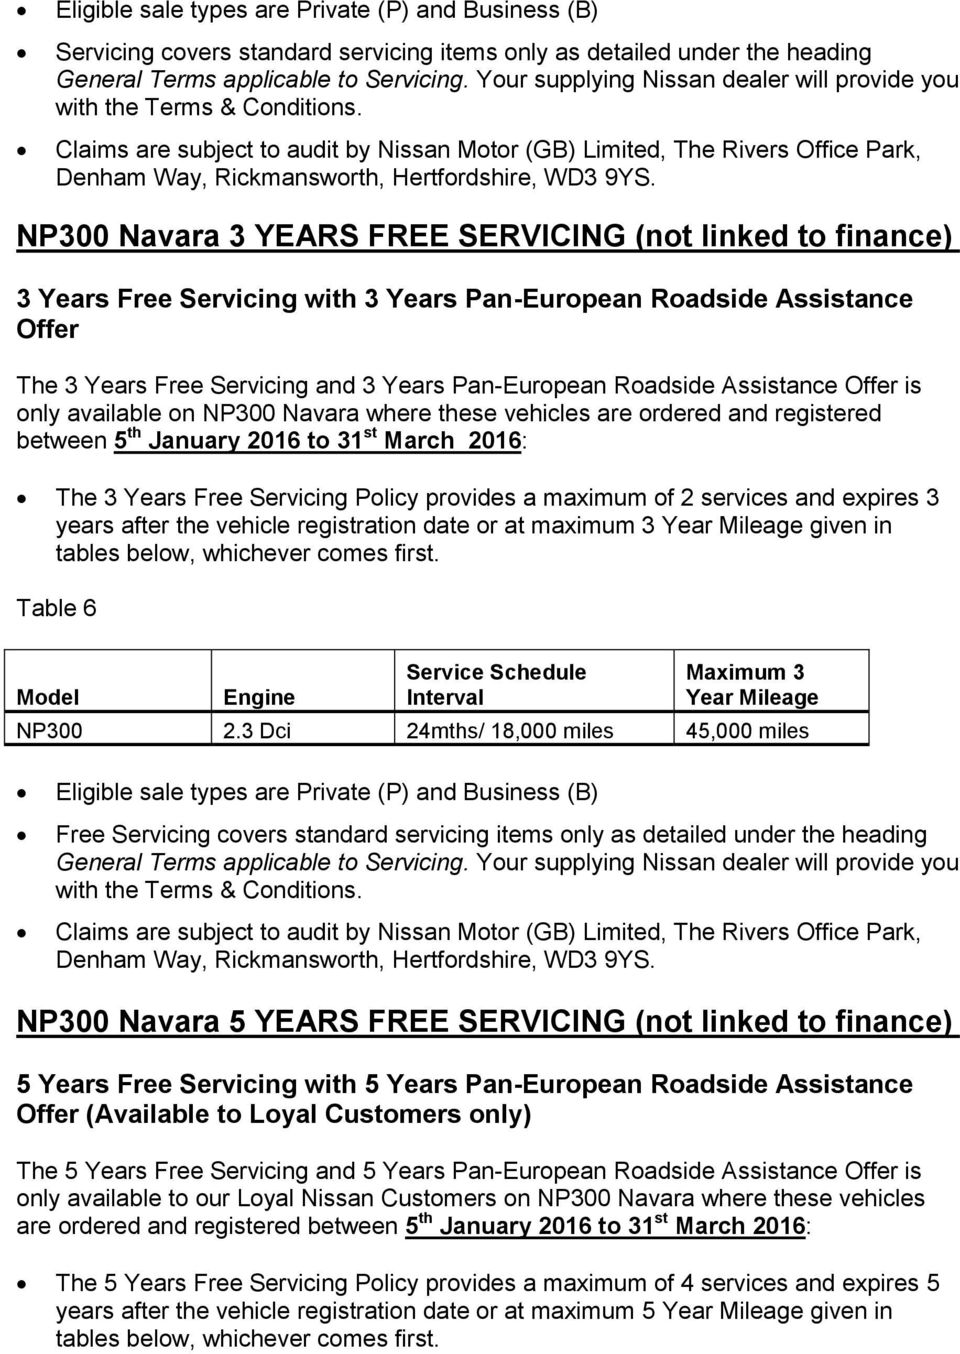 NP300 Navara 3 YEARS FREE SERVICING (not linked to finance) 3 Years Free Servicing with 3 Years Pan-European Roadside Assistance Offer The 3 Years Free Servicing and 3 Years Pan-European Roadside